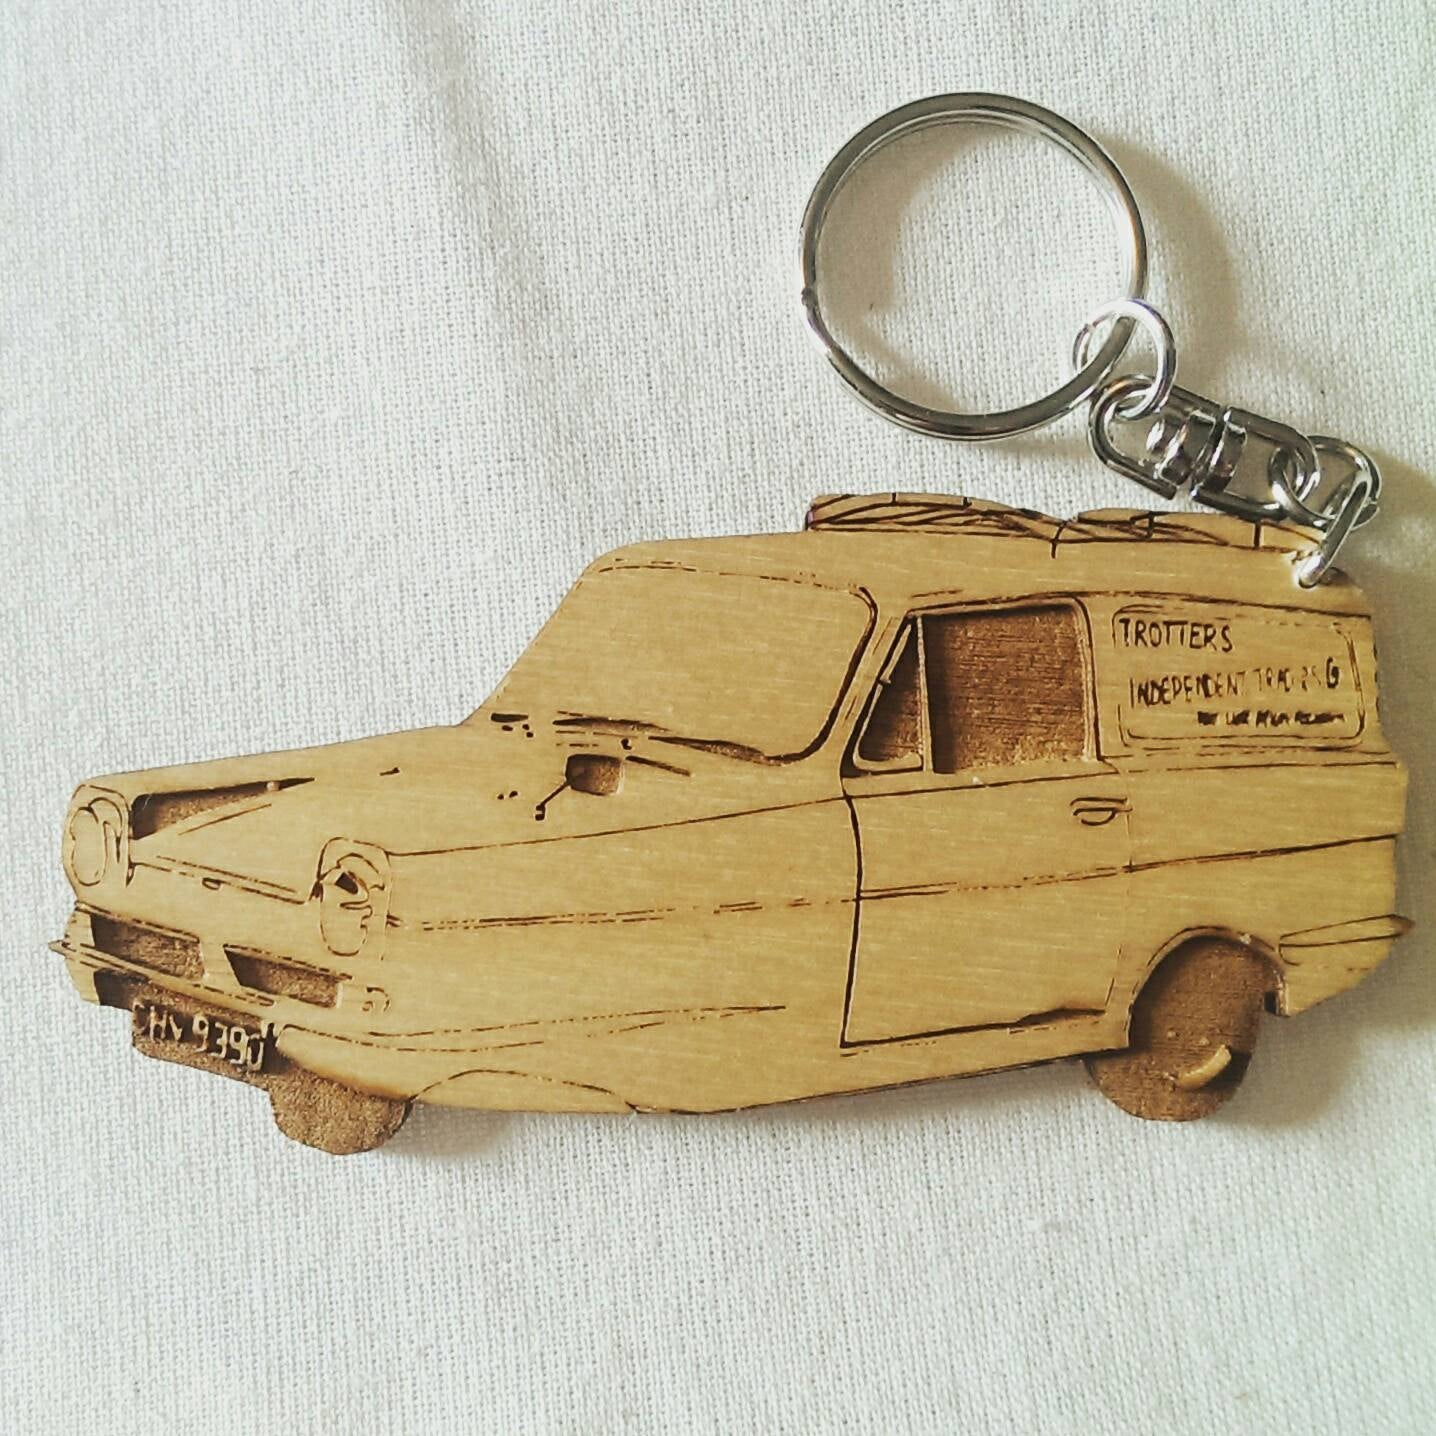 Limited Edition - Only Fools and Horses - Fritters Independent Traders - Reliant Robin 3 Wheeled van - ByCandlelight27